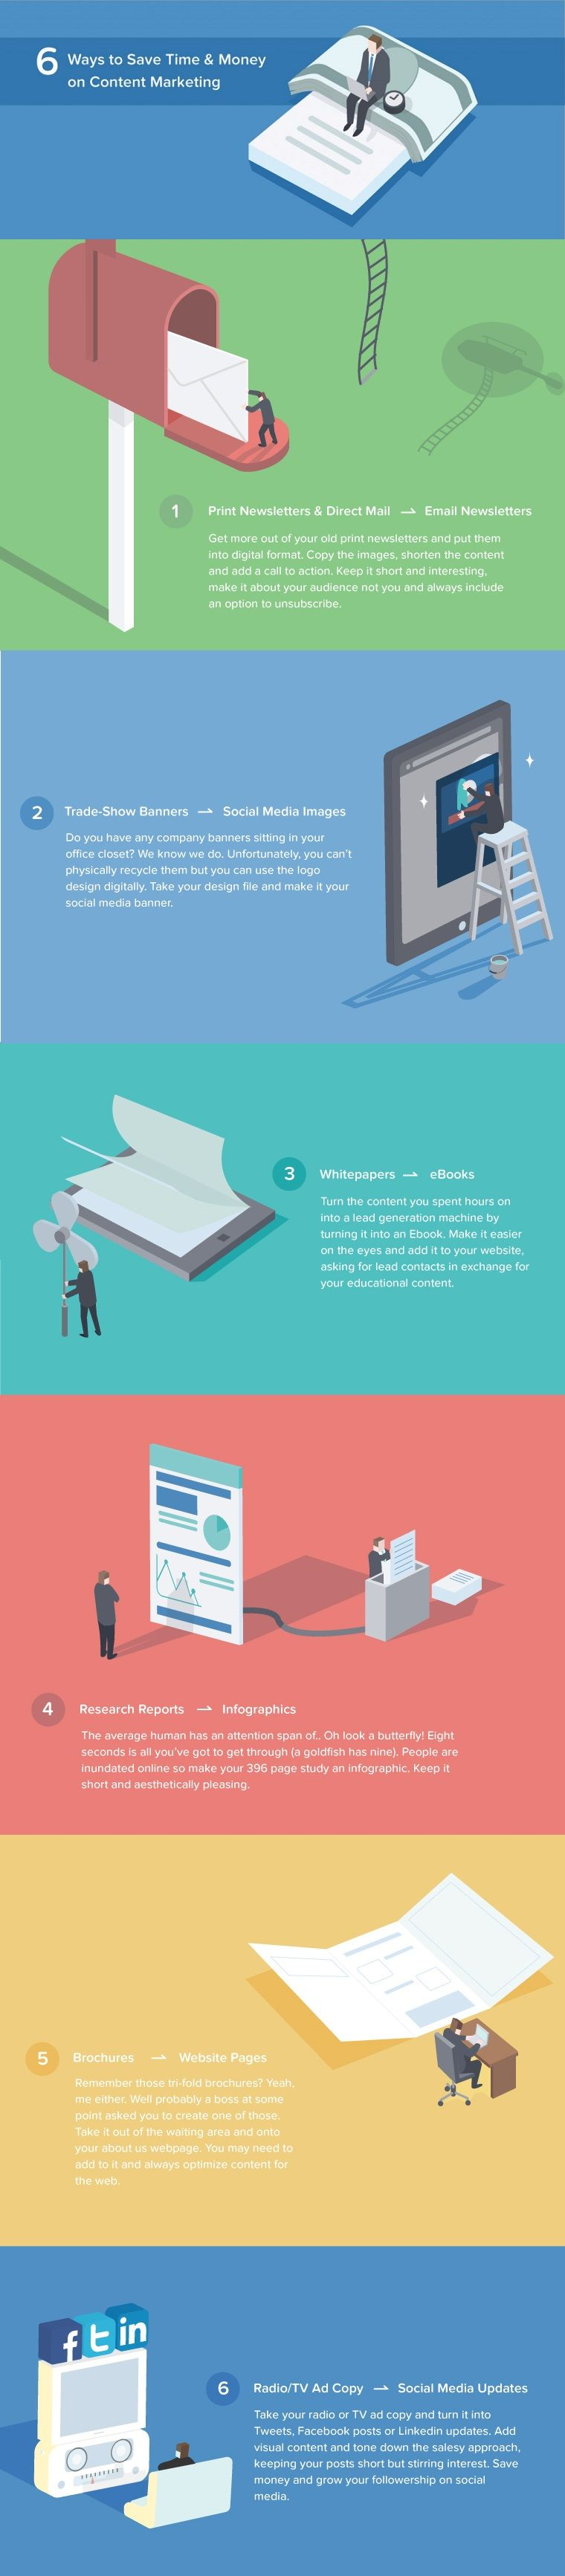 6 Ways To Save Time And Money On Content Marketing #Infographic